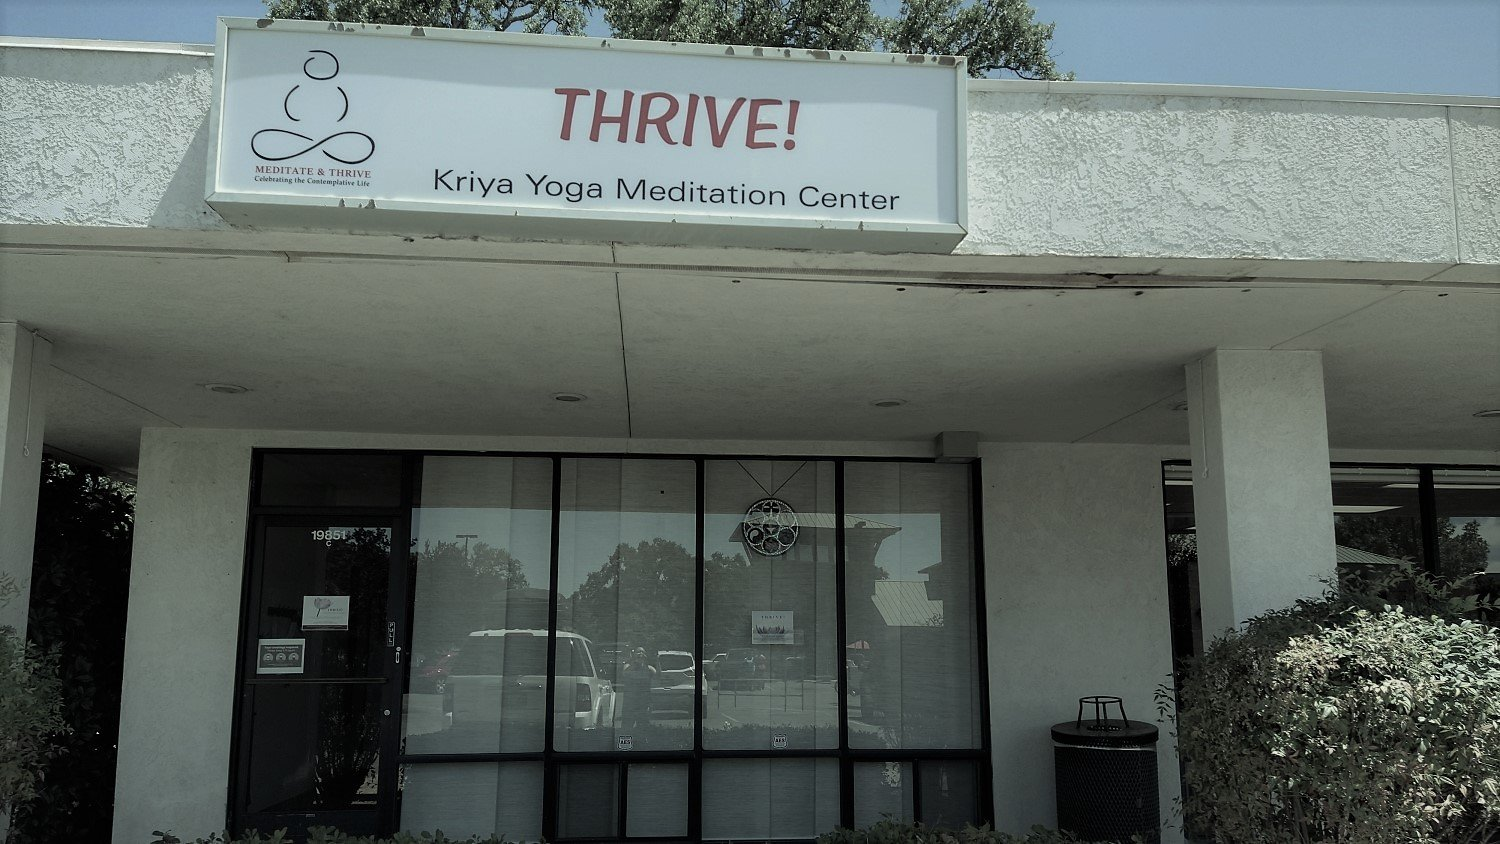 Thrive Kriya Yoga Meditation Center Opens In Hidden Valley Lake A Sanctuary For Peace In South Lake County The Lake County Bloom